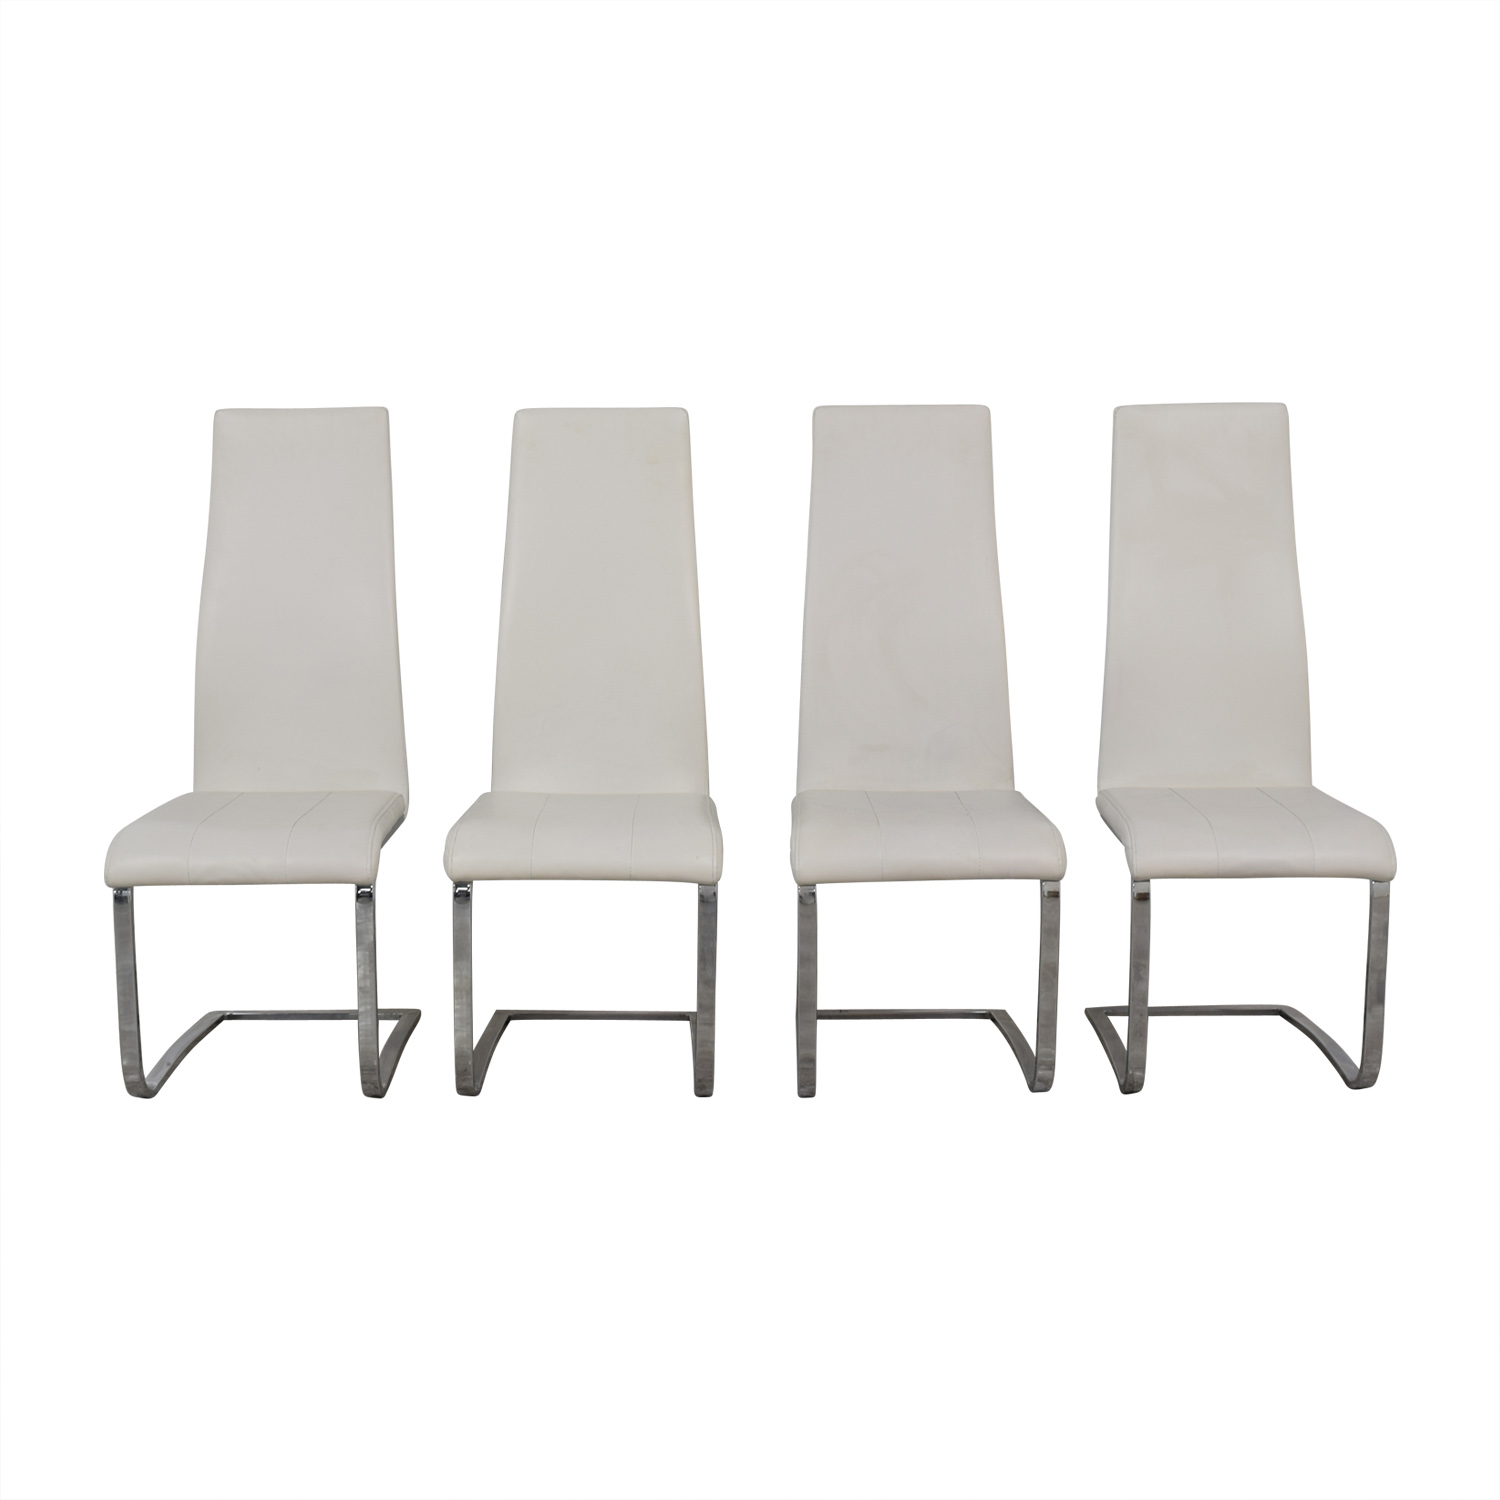 Coaster Coaster Modern White Leather Dinning Chairs used